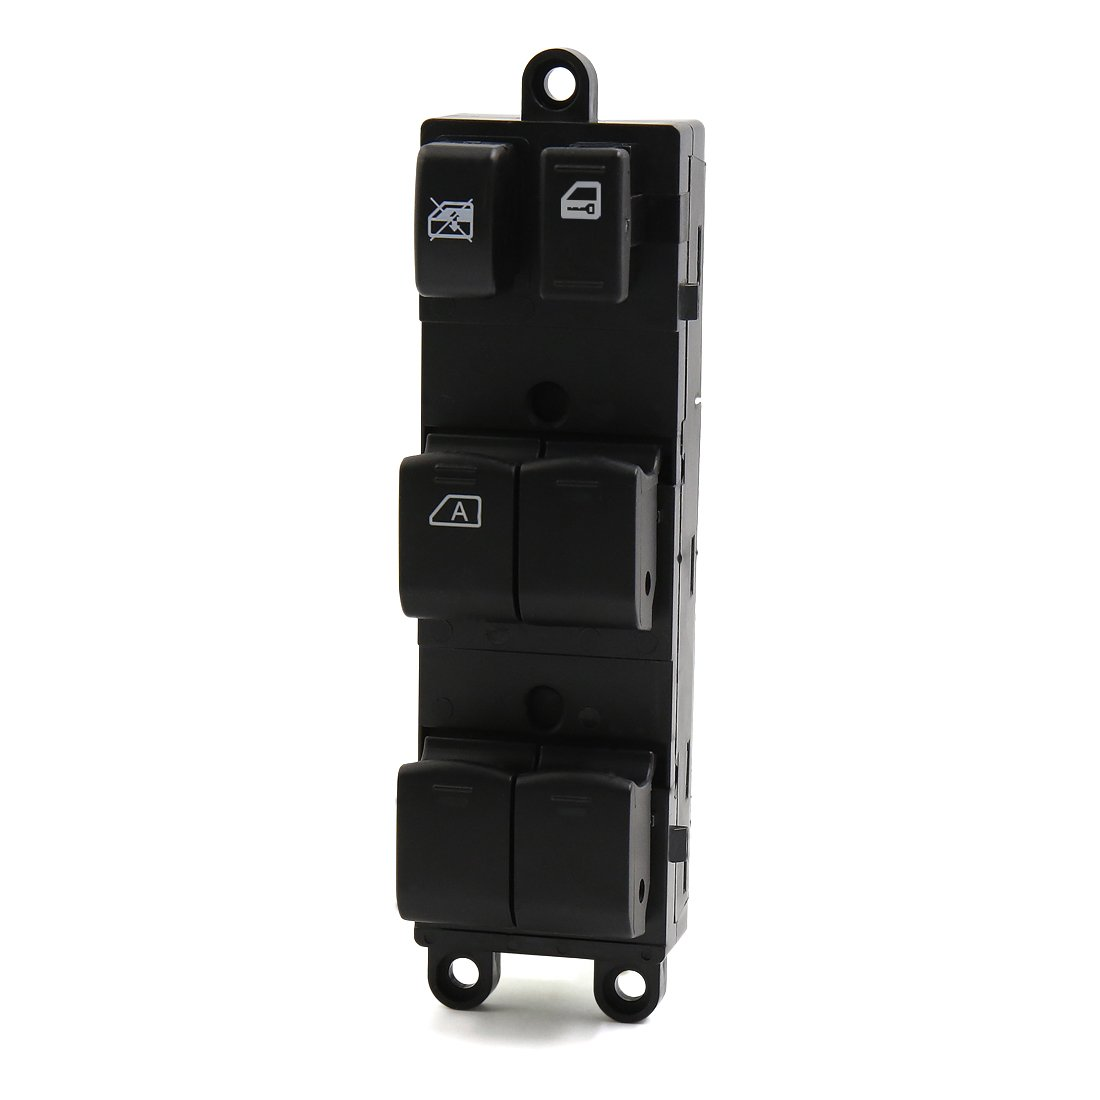 uxcell Electric Power Window Master Switch for 2007-2008 Nissan Sentra 25401-ET000 a17010200ux0303